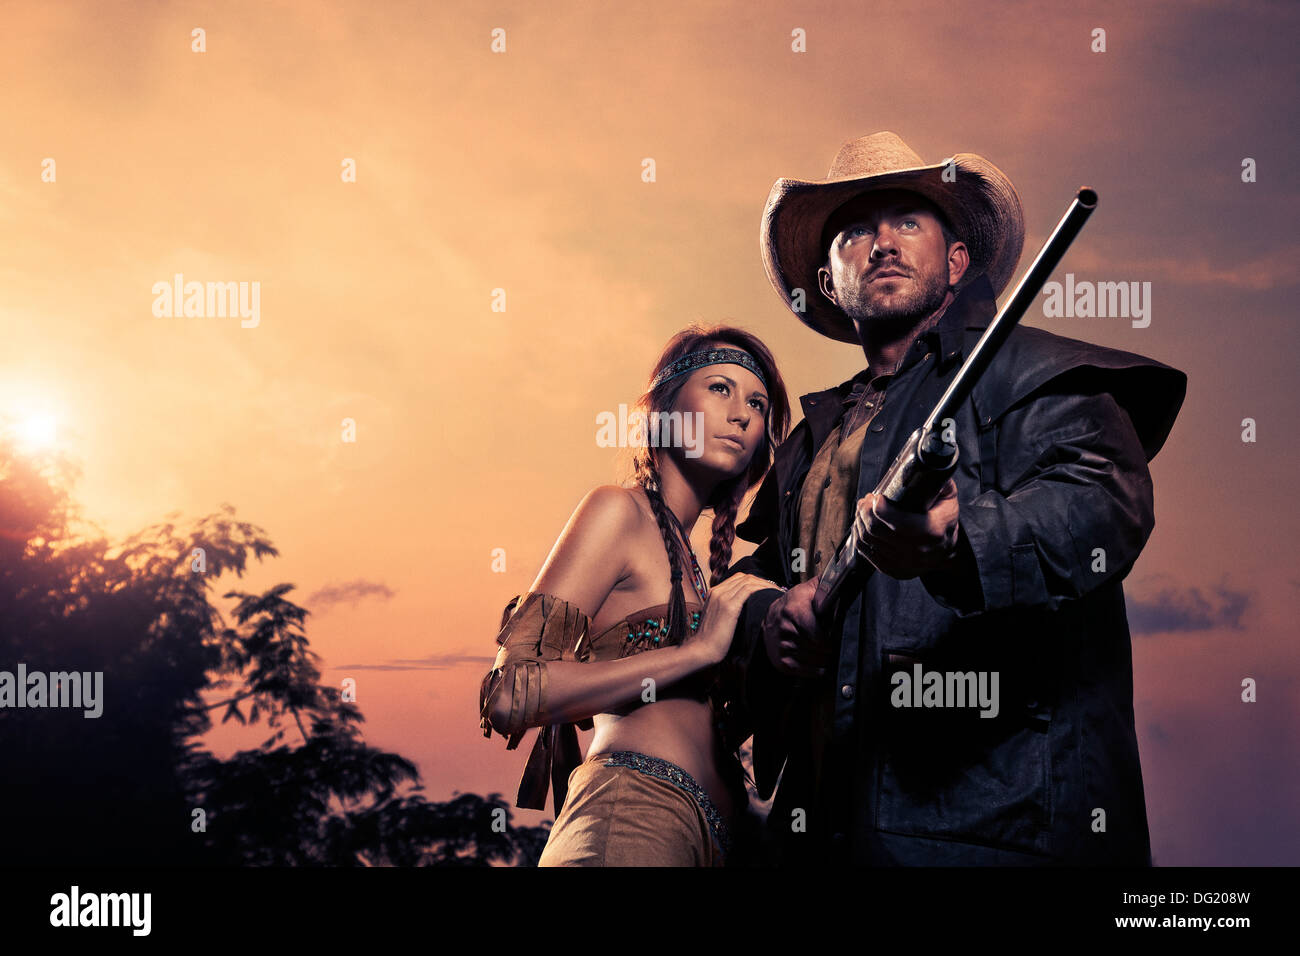 Cowboy and Indian woman with rifle in front of sundown - Stock Image